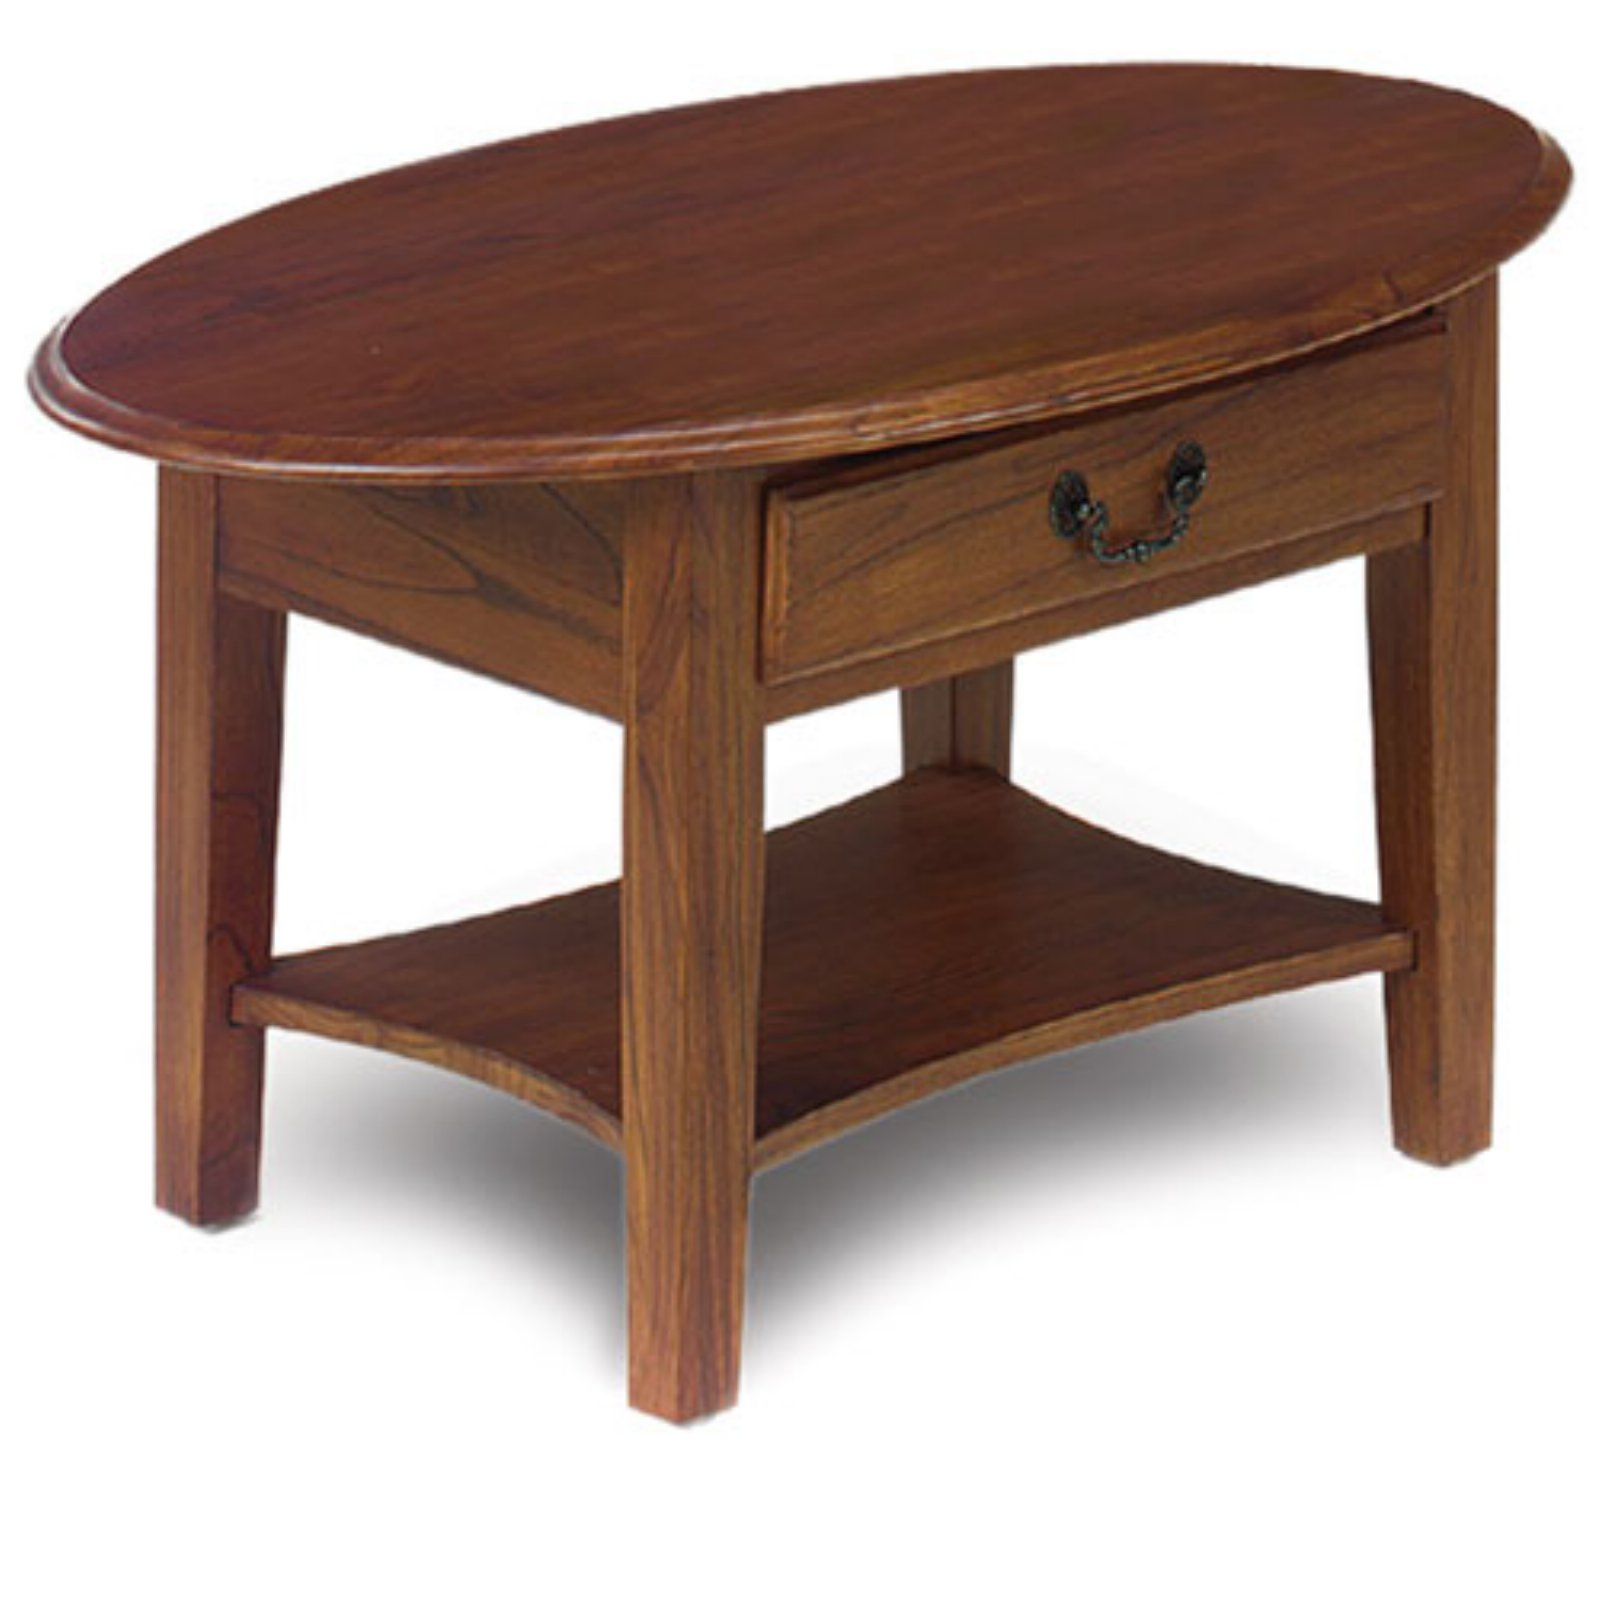 Leick Home Oval Coffee Table, Multiple Colors